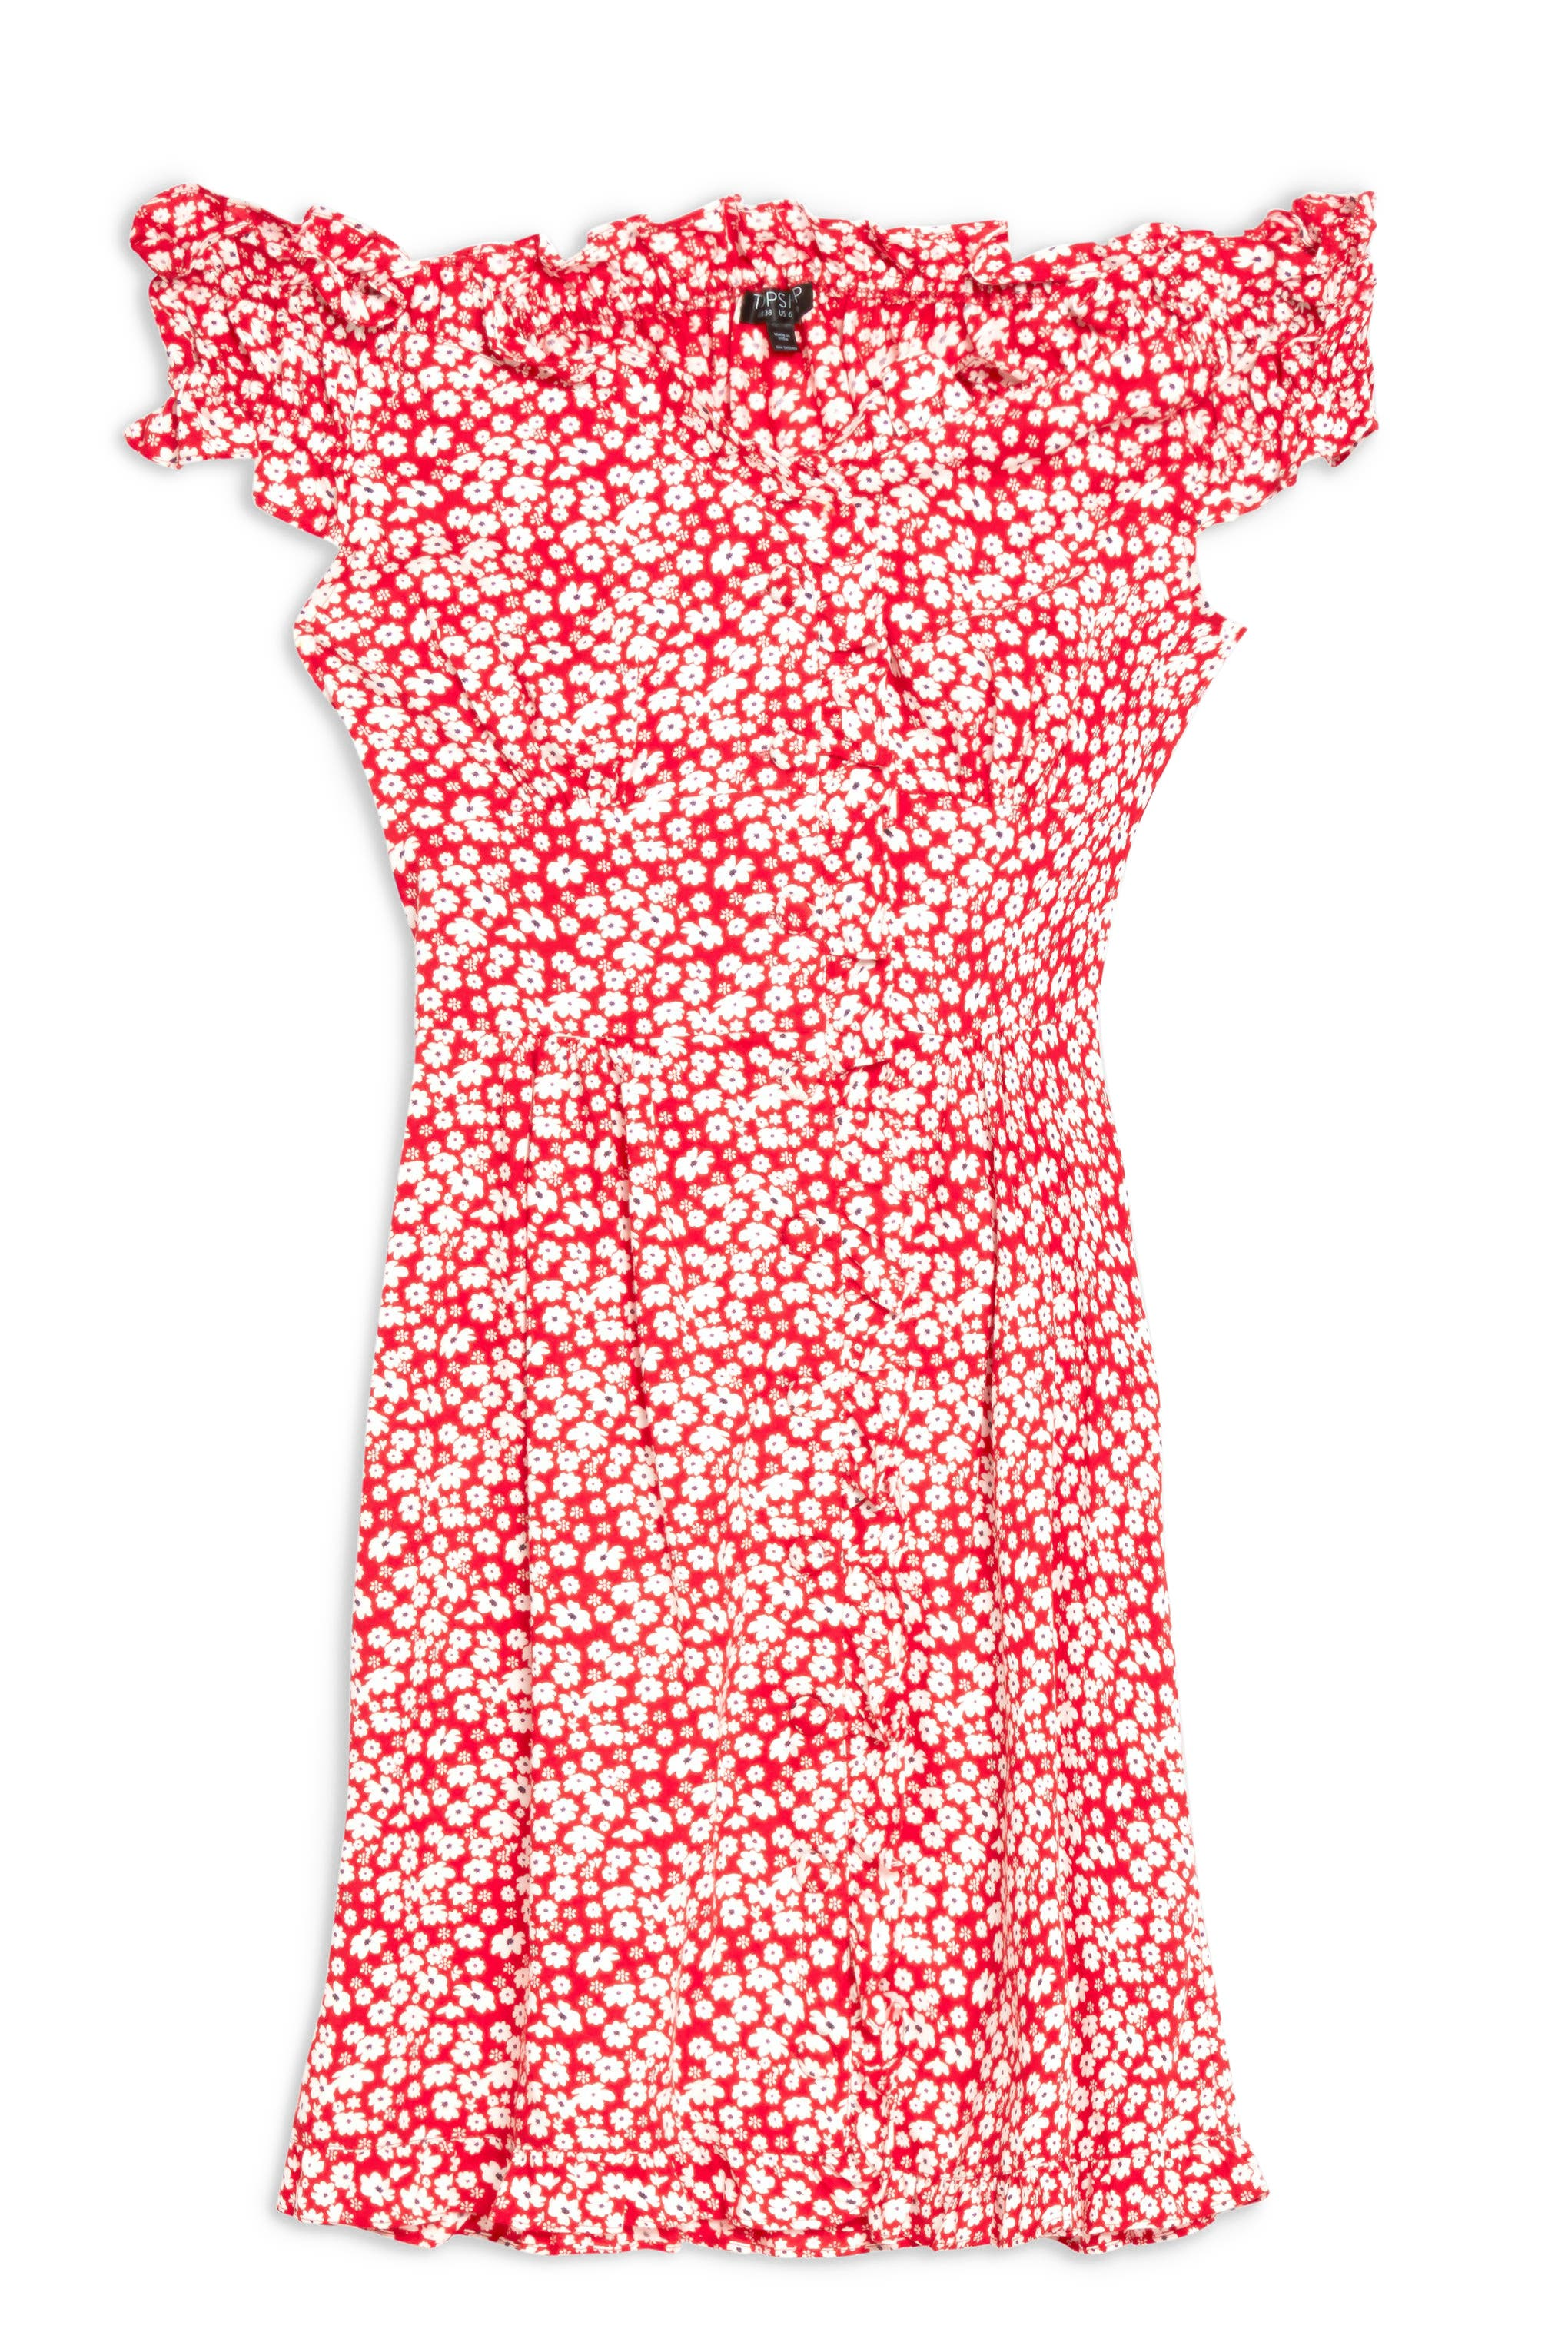 TOPSHOP,                             Ditsy Floral Minidress,                             Alternate thumbnail 4, color,                             RED MULTI